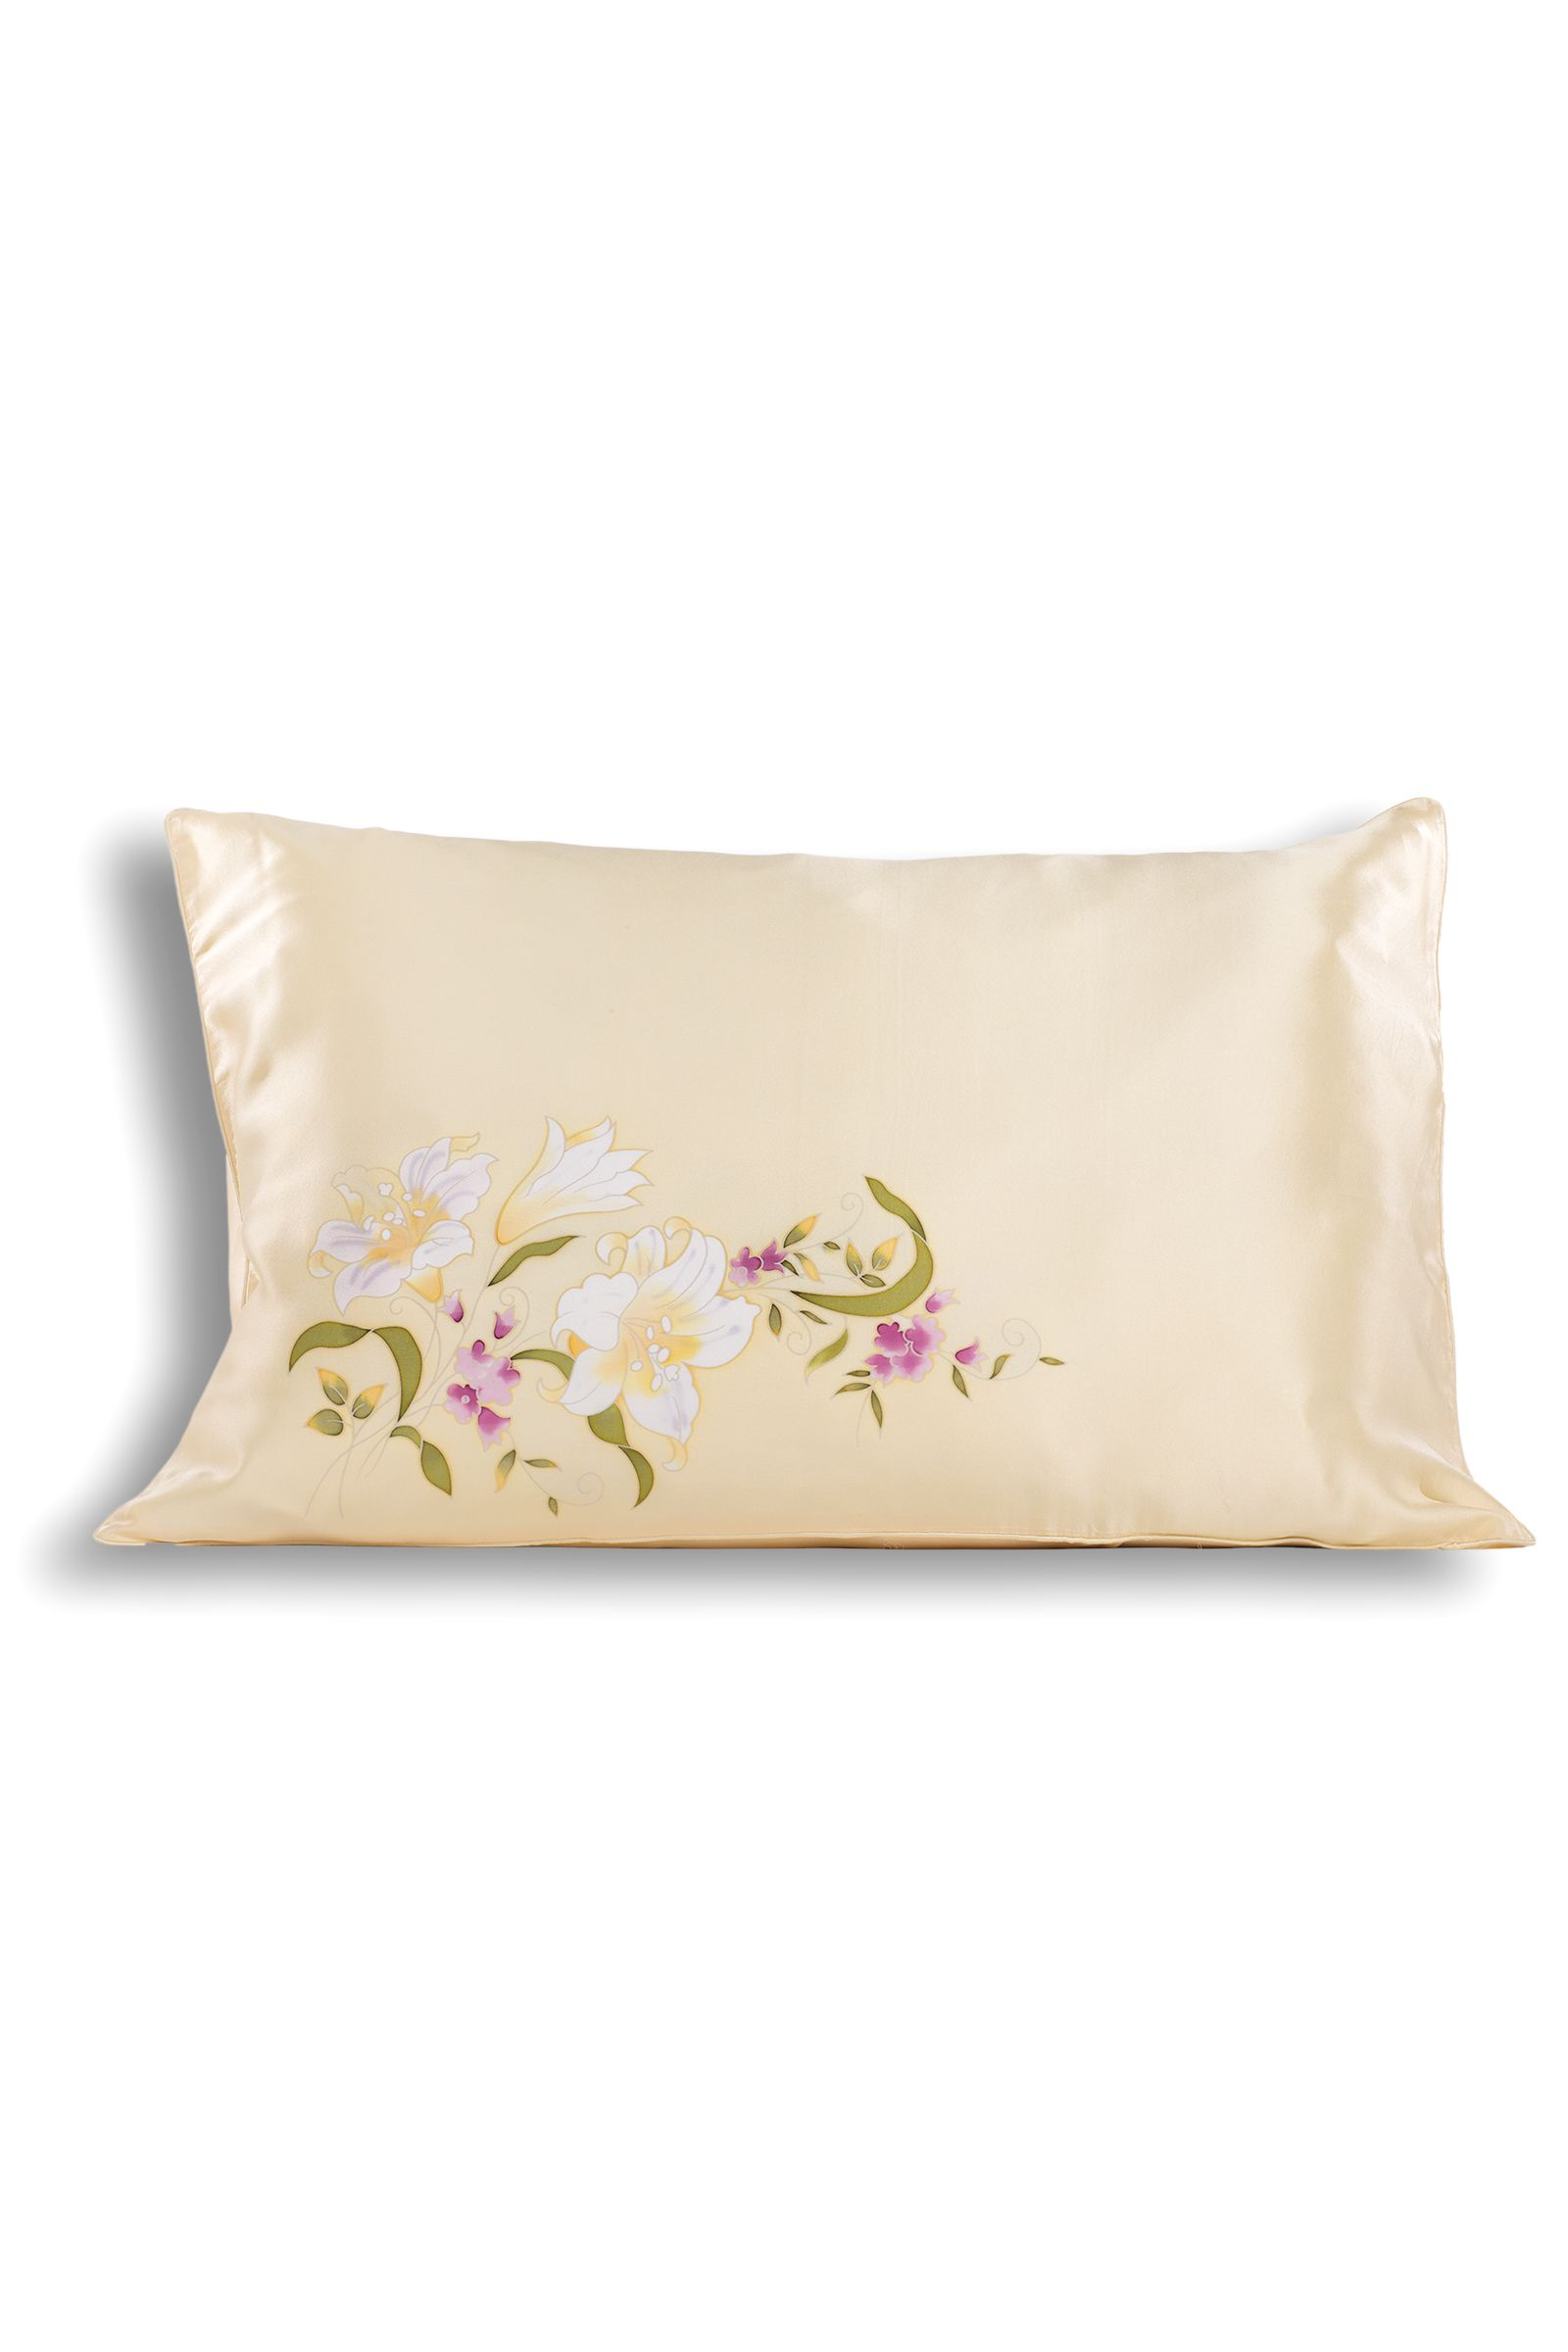 Hand Painted Silk Pillowcases: Available in Various Designs